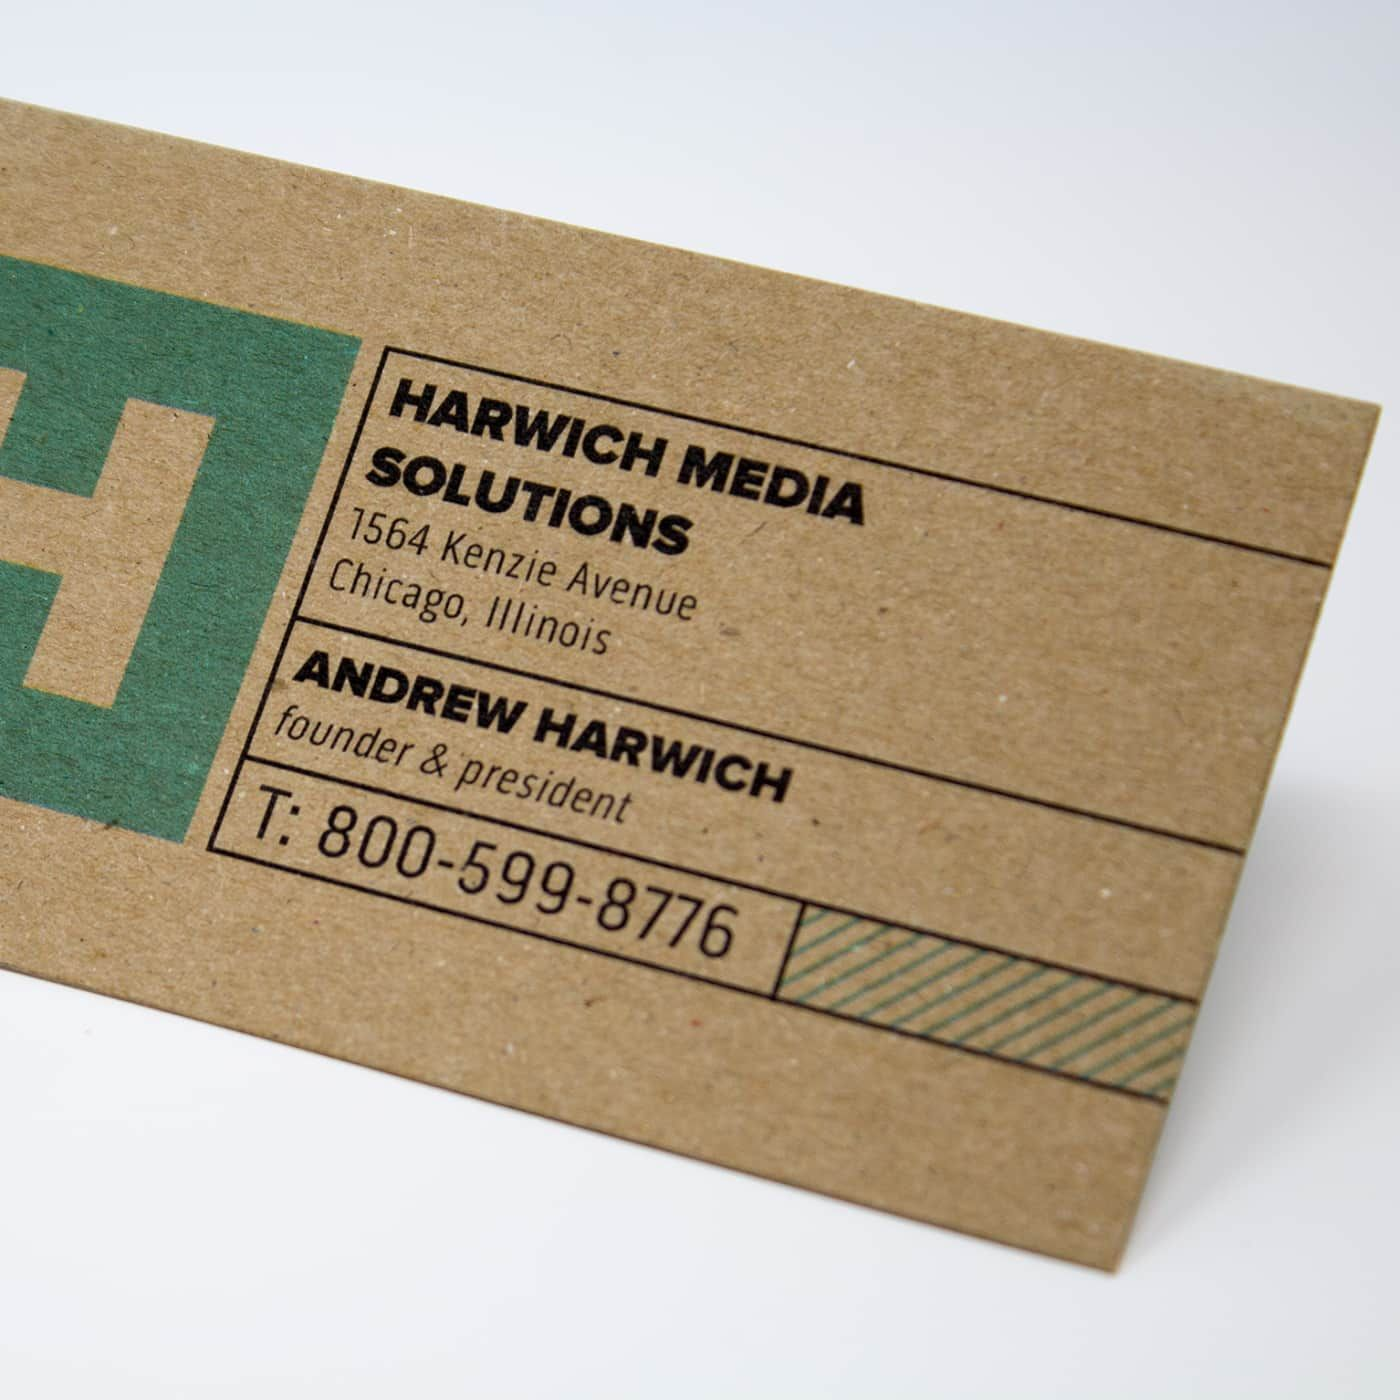 Kraft Paper Business Cards Eco Friendly Cards Vistaprint Kraft Business Cards Printing Business Cards Eco Friendly Business Cards